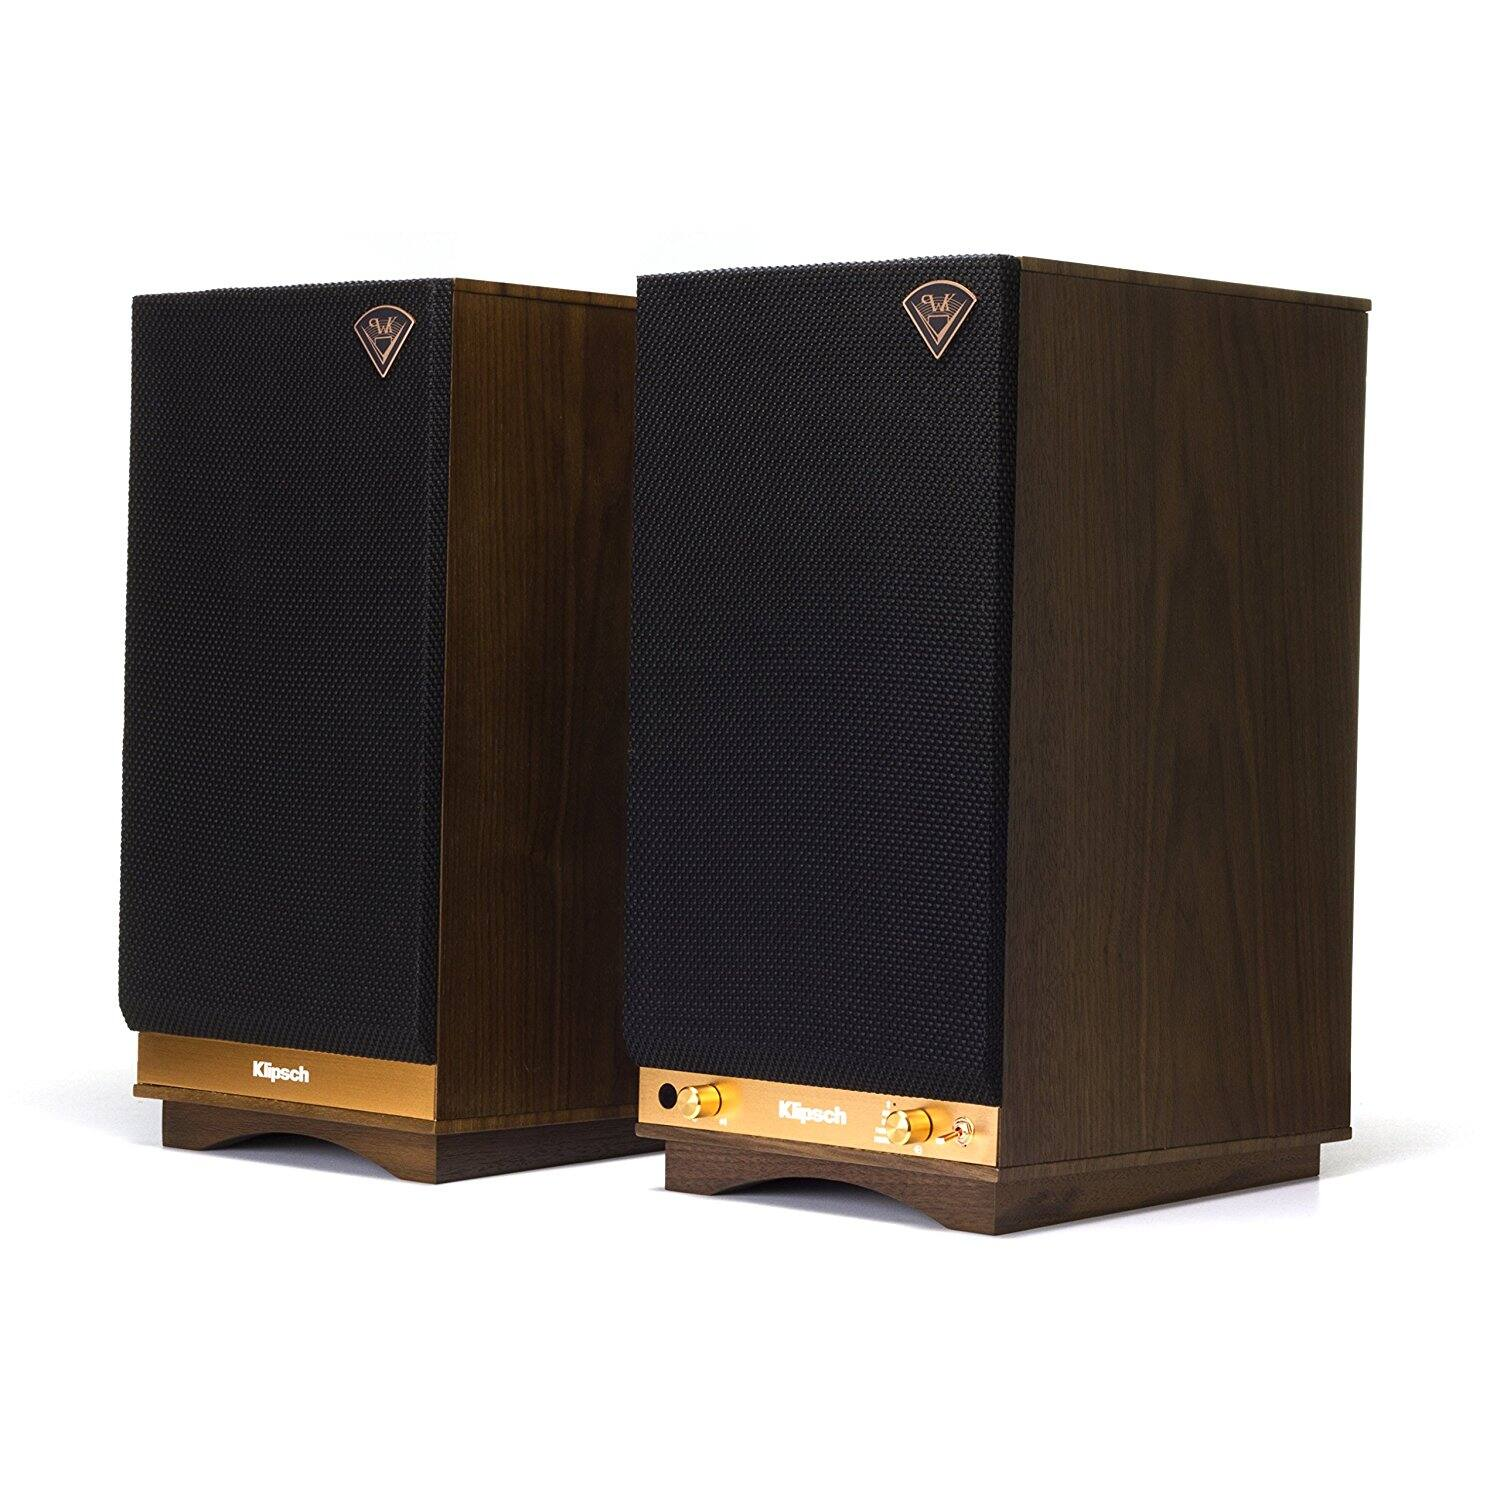 Klipsch The Sixes Powered Monitor – Walnut Veneer (Pair) for $497.99 $497.77